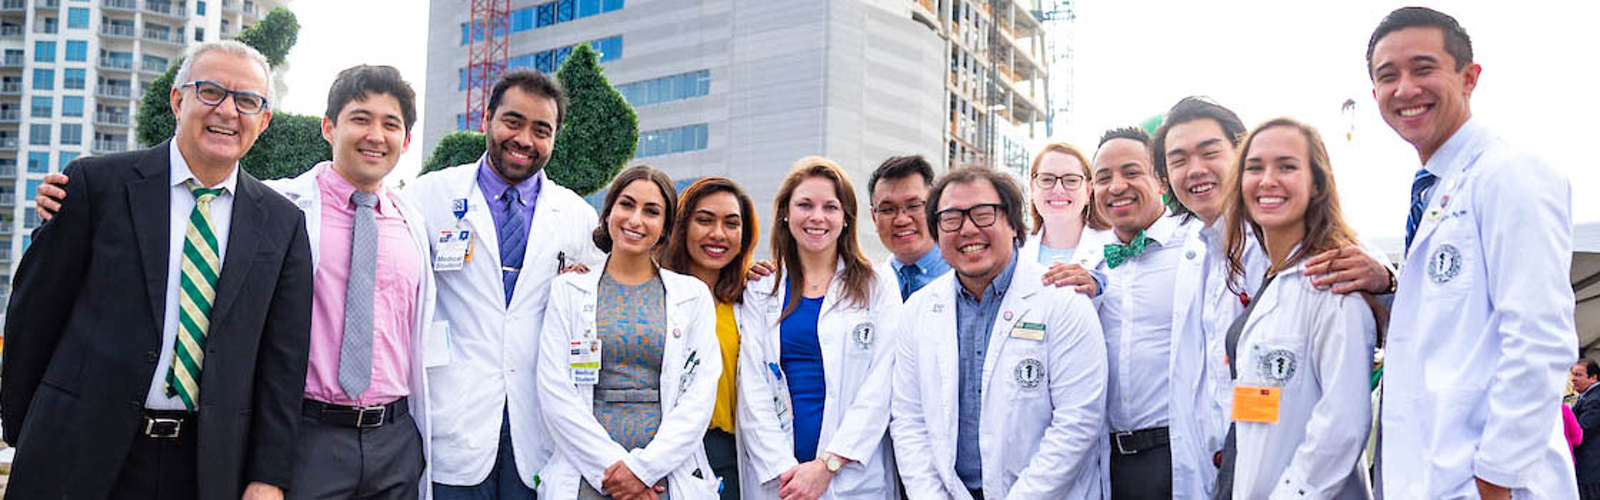 Dr. Panos Vasiloudes poses with medical students at the November topping off-ceremony for the new USF Health Morsani College of Medicine and Heart Institute. <span class='image-credits'>USF, USF Health Morsani College of Medicine and Heart Institute</span>